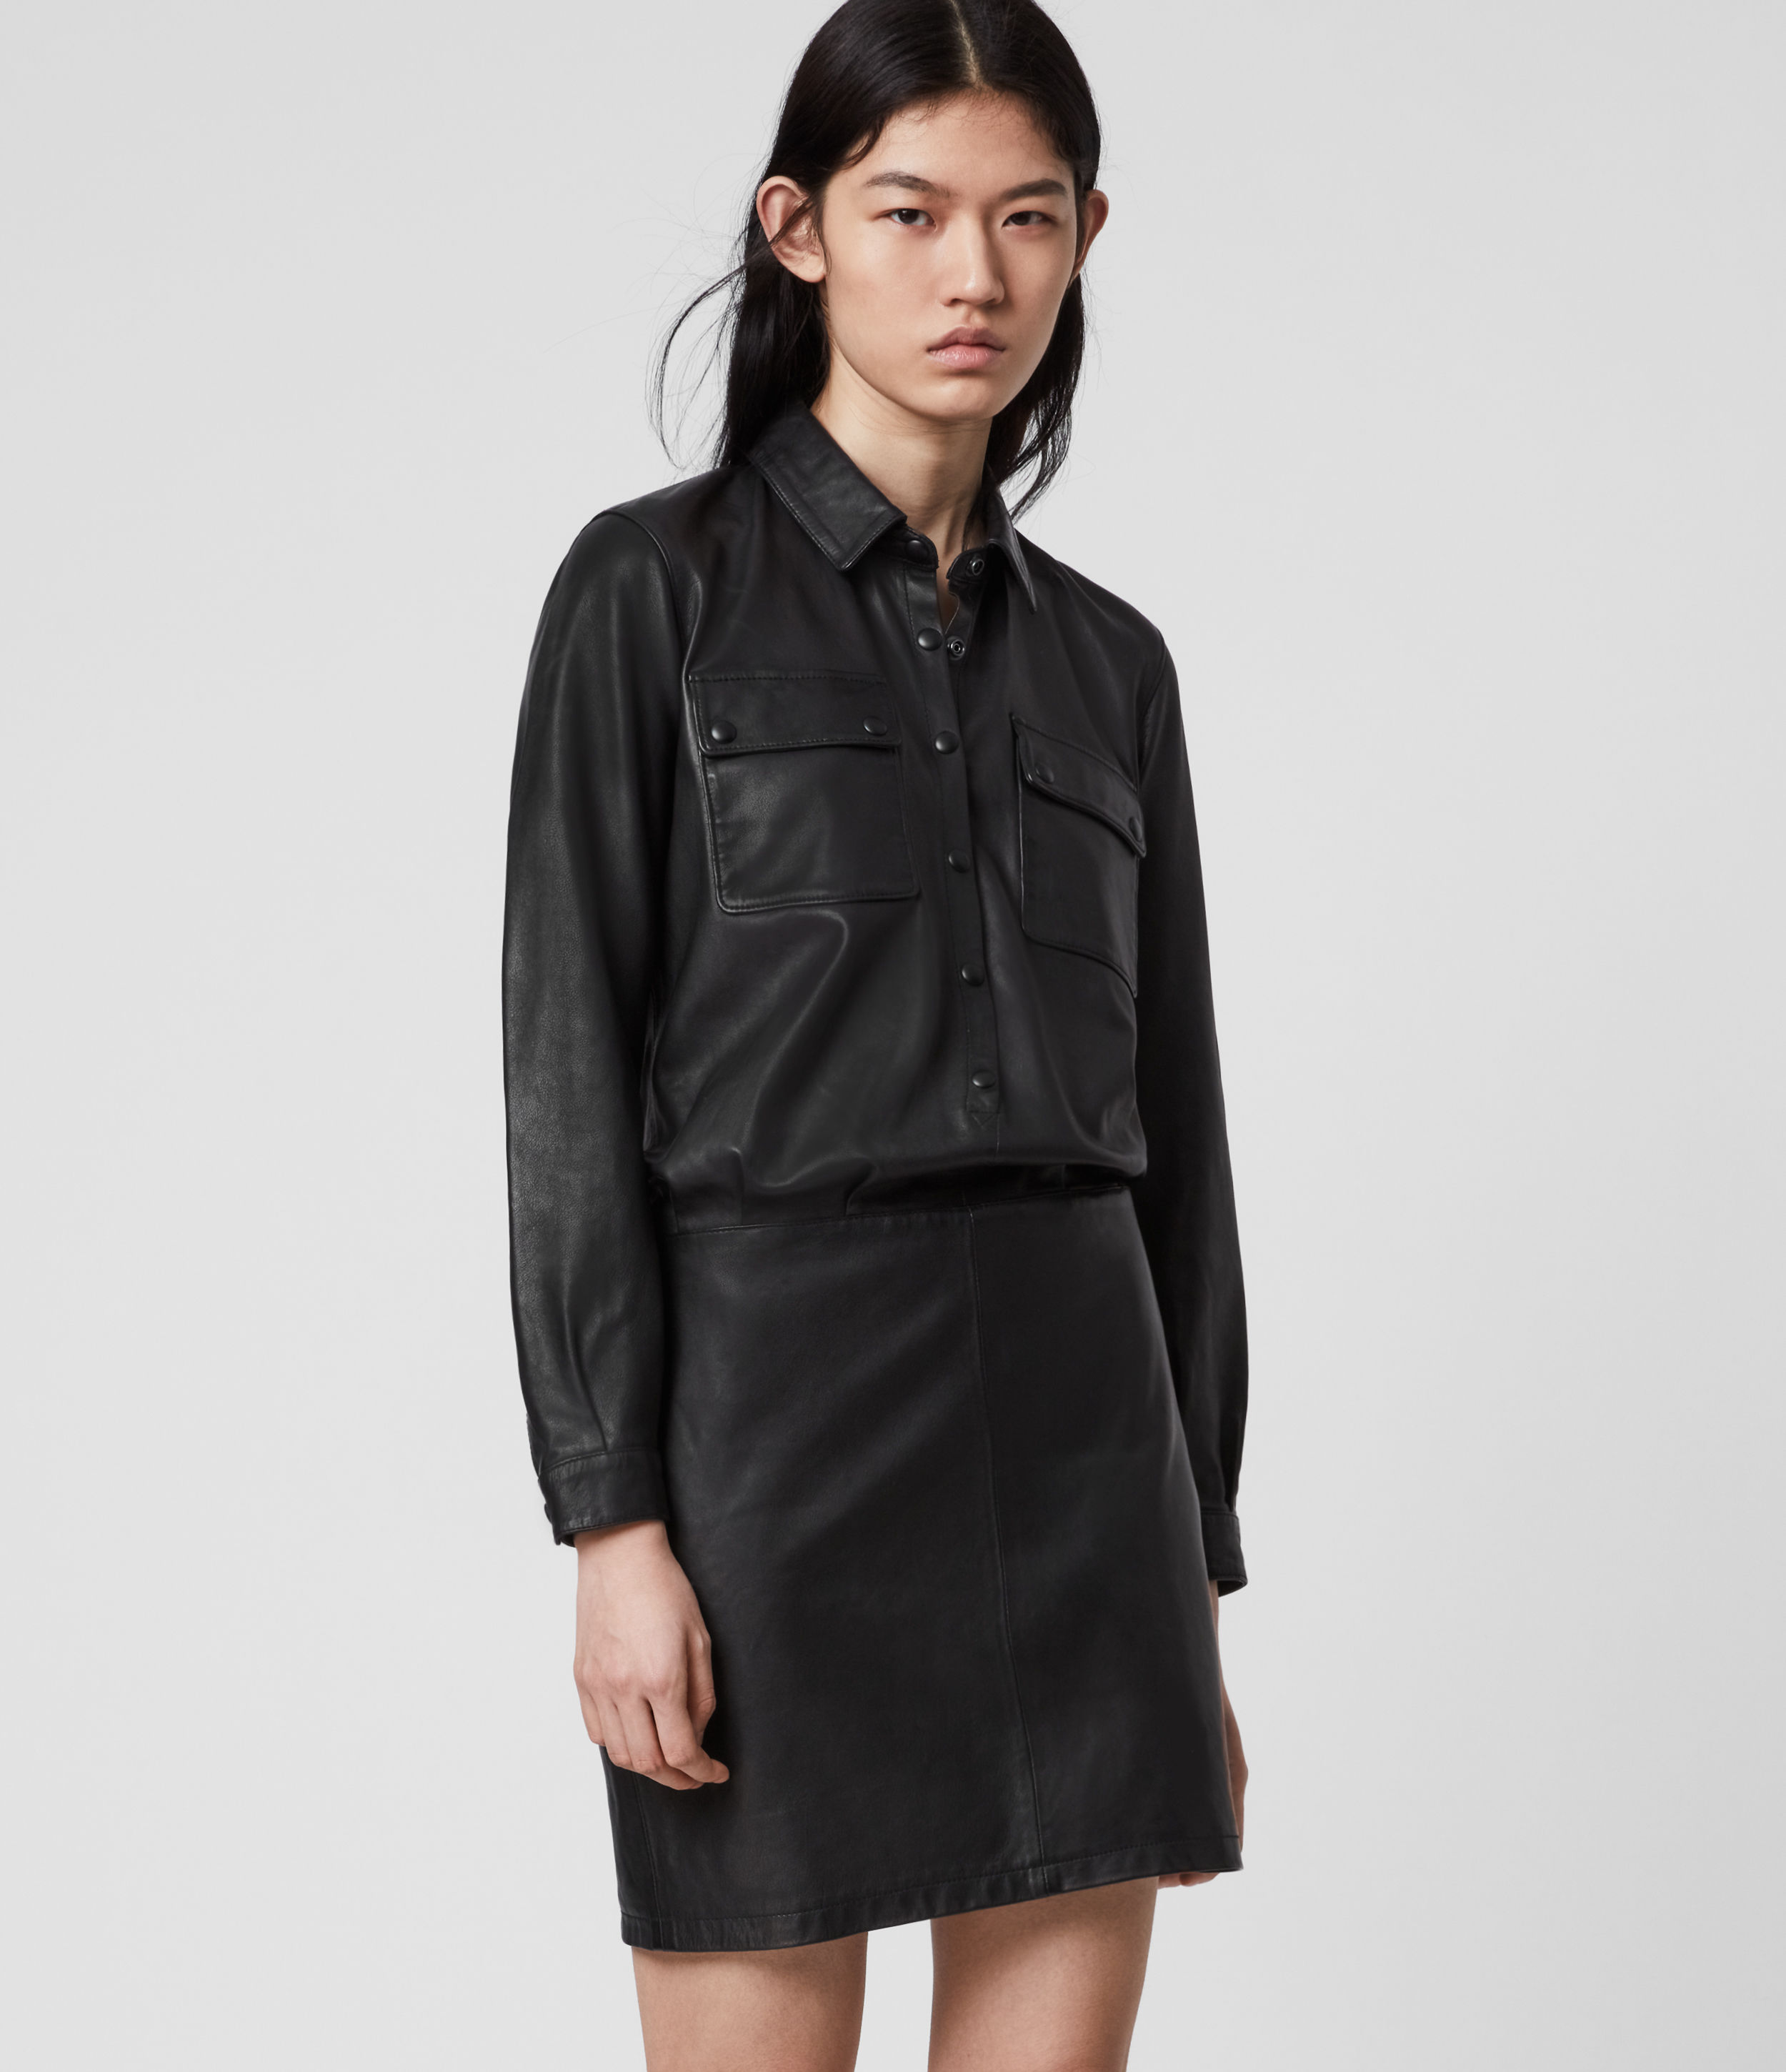 AllSaints Kadi Leather Dress